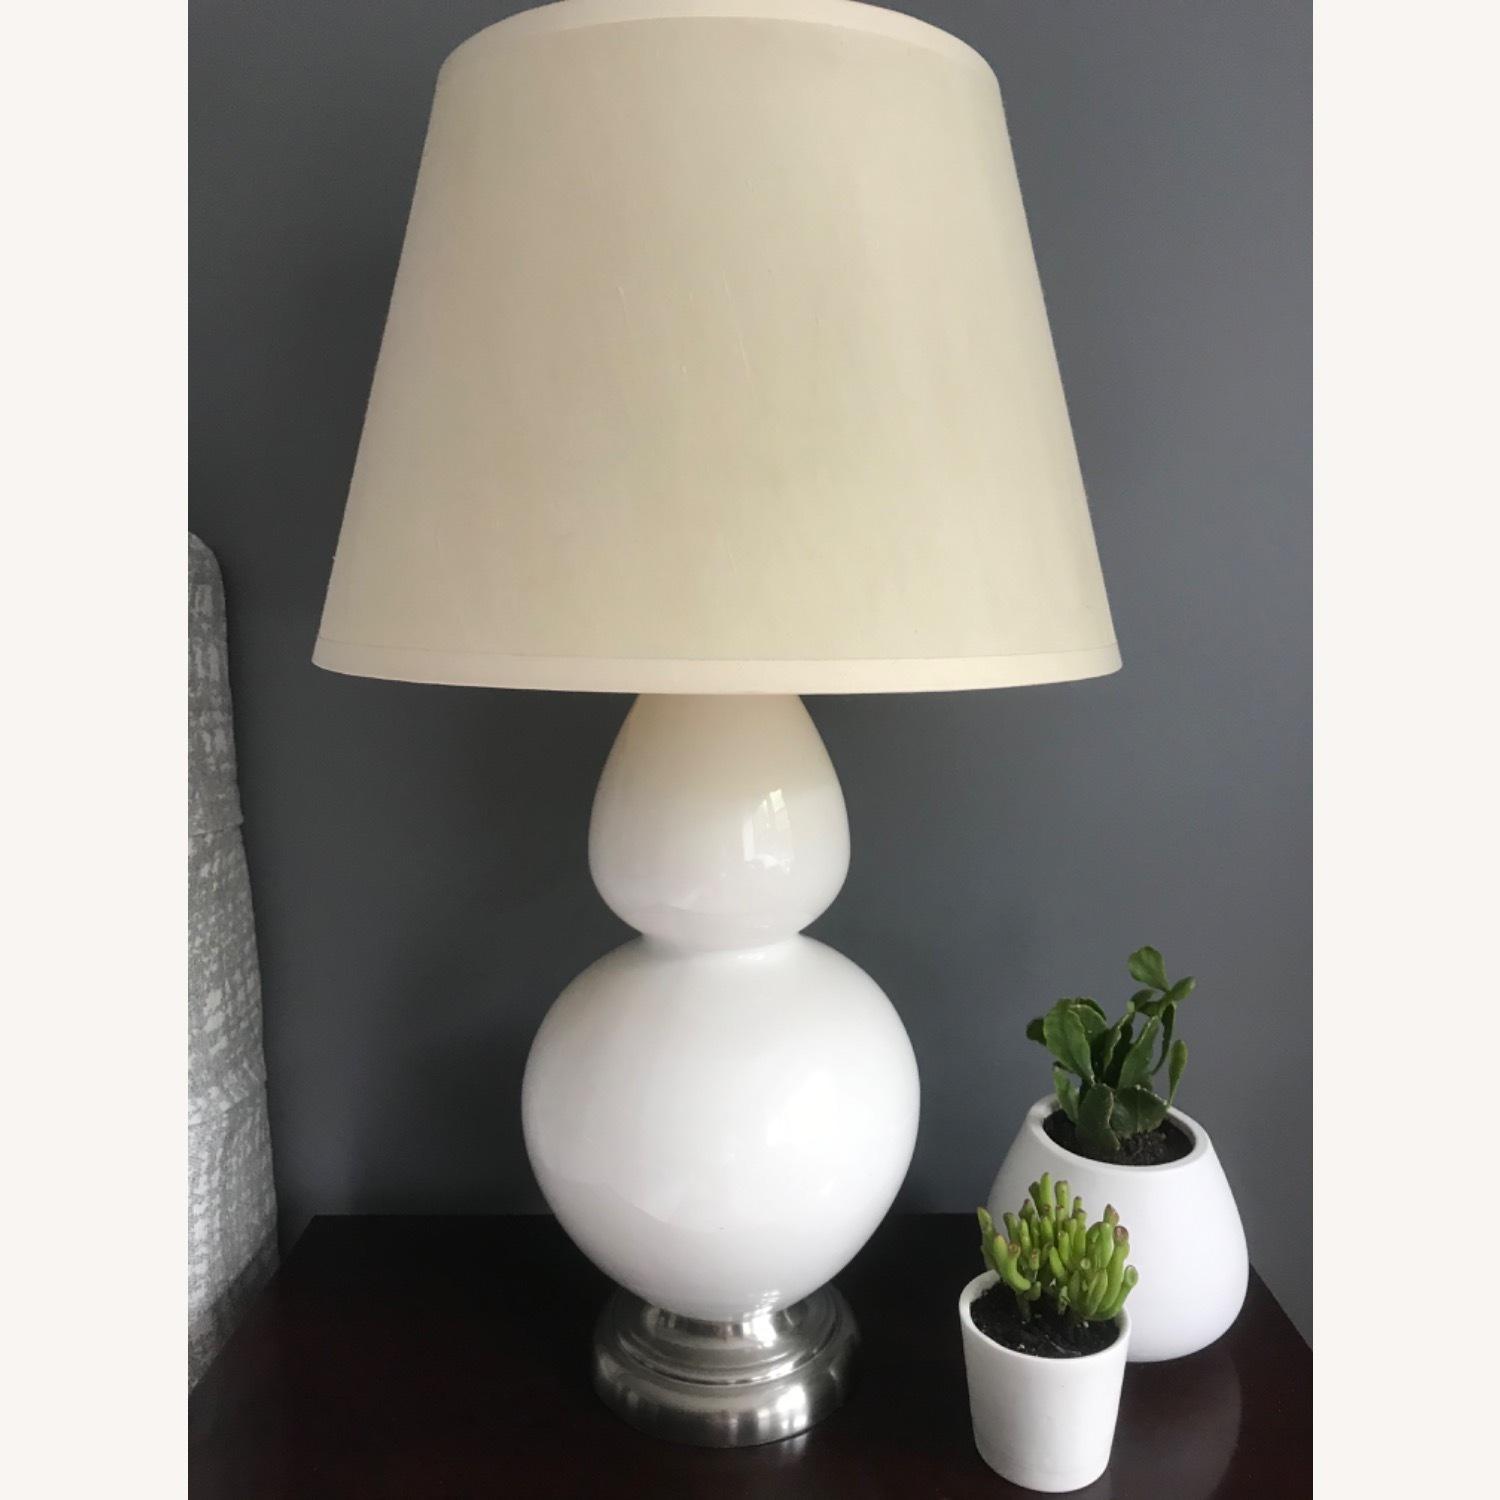 Restoration Hardware Table Lamp - image-1